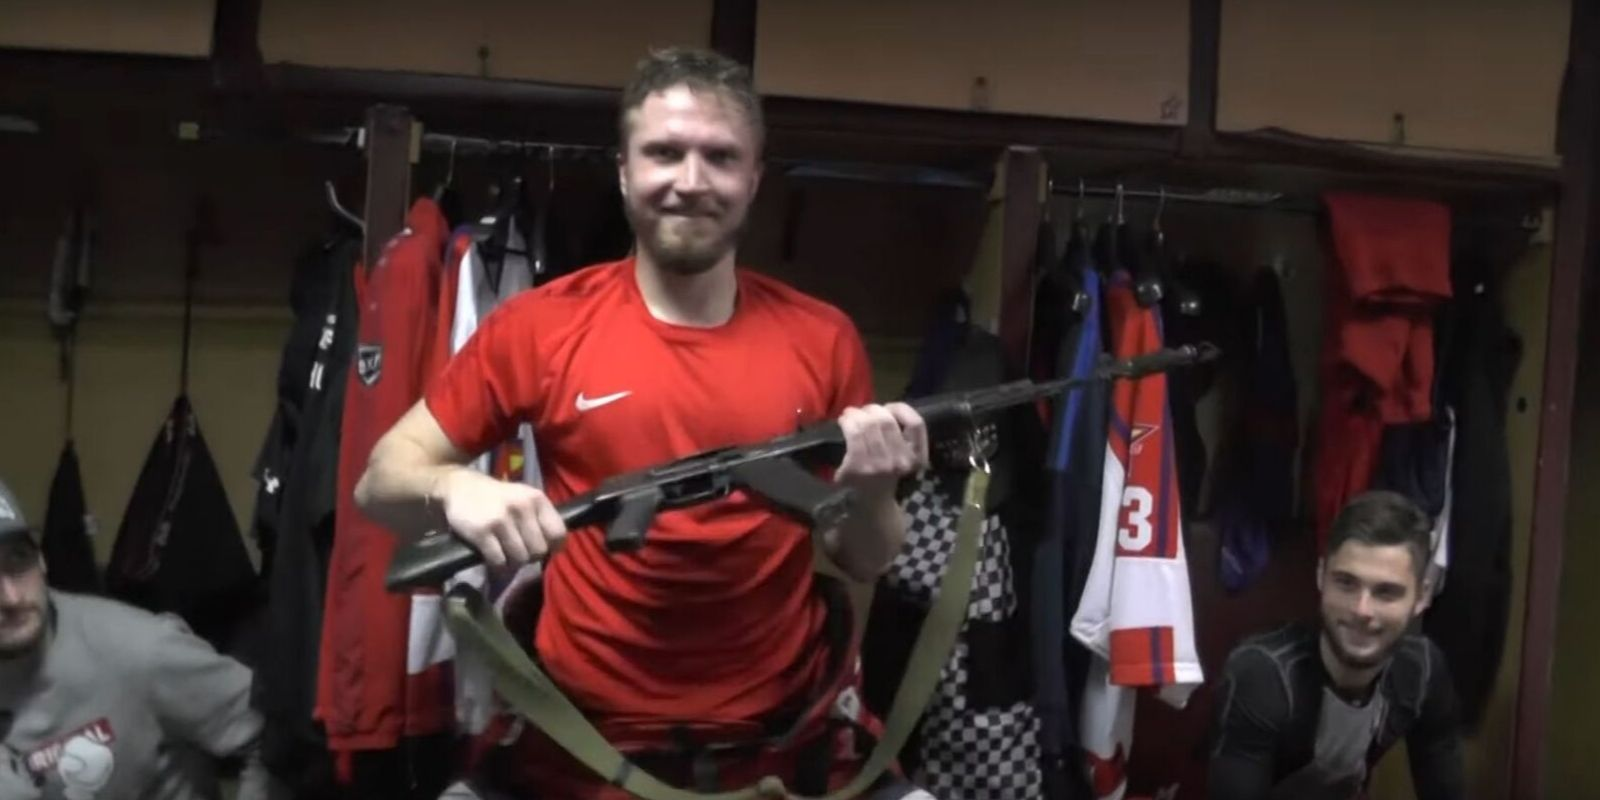 WATCH: In Russia, being good at hockey gets you an AK-47 instead of a trophy